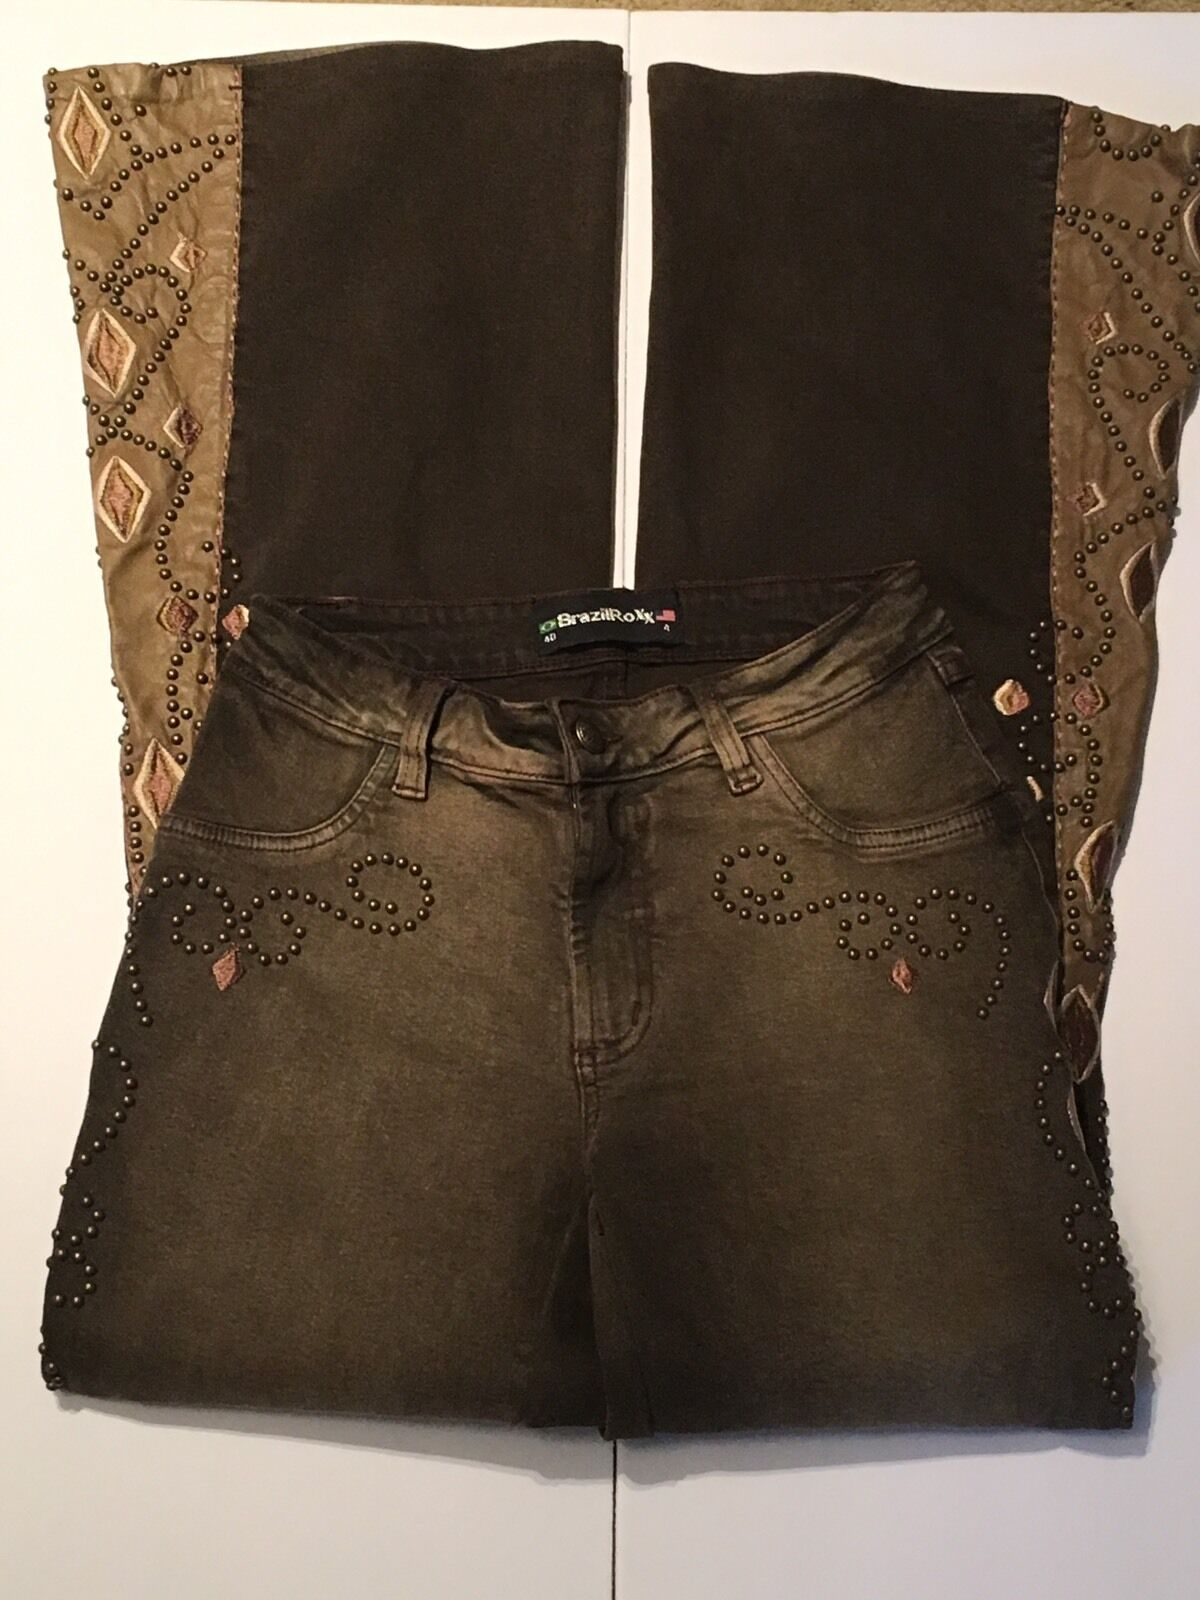 BrazilRoxx Brown Denims With Leather And Extensive Embroidery, Studs,Sz 40 MINT